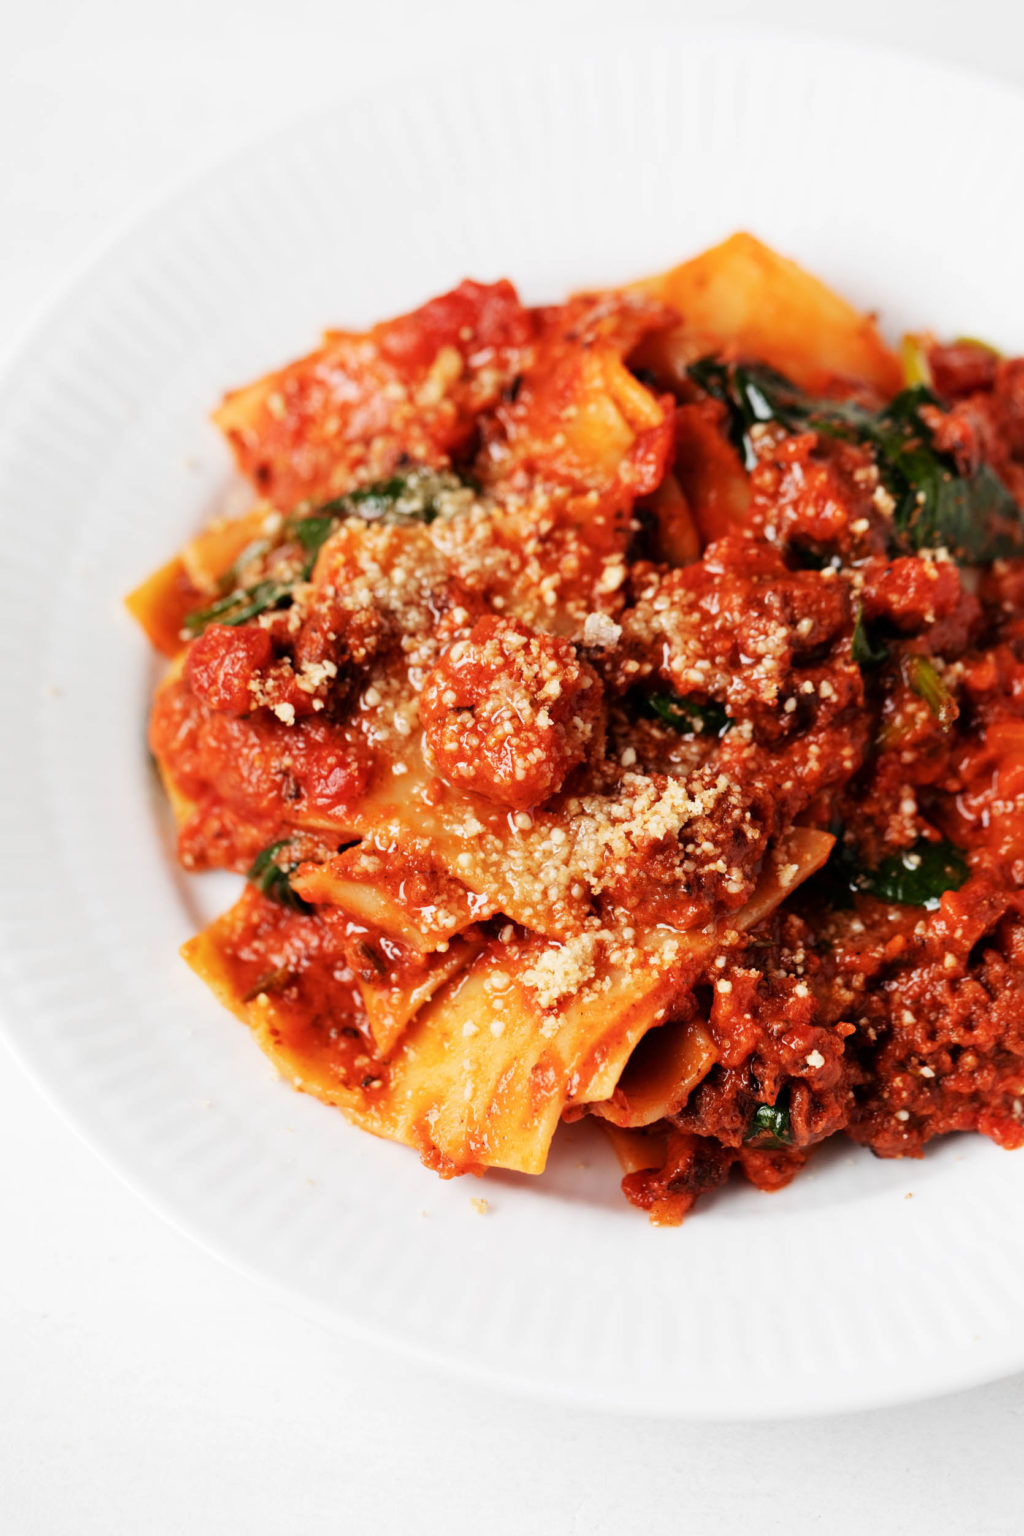 A white, shallow bowl has been piled high with a plant-based pasta dish, covered in red tomato sauce.